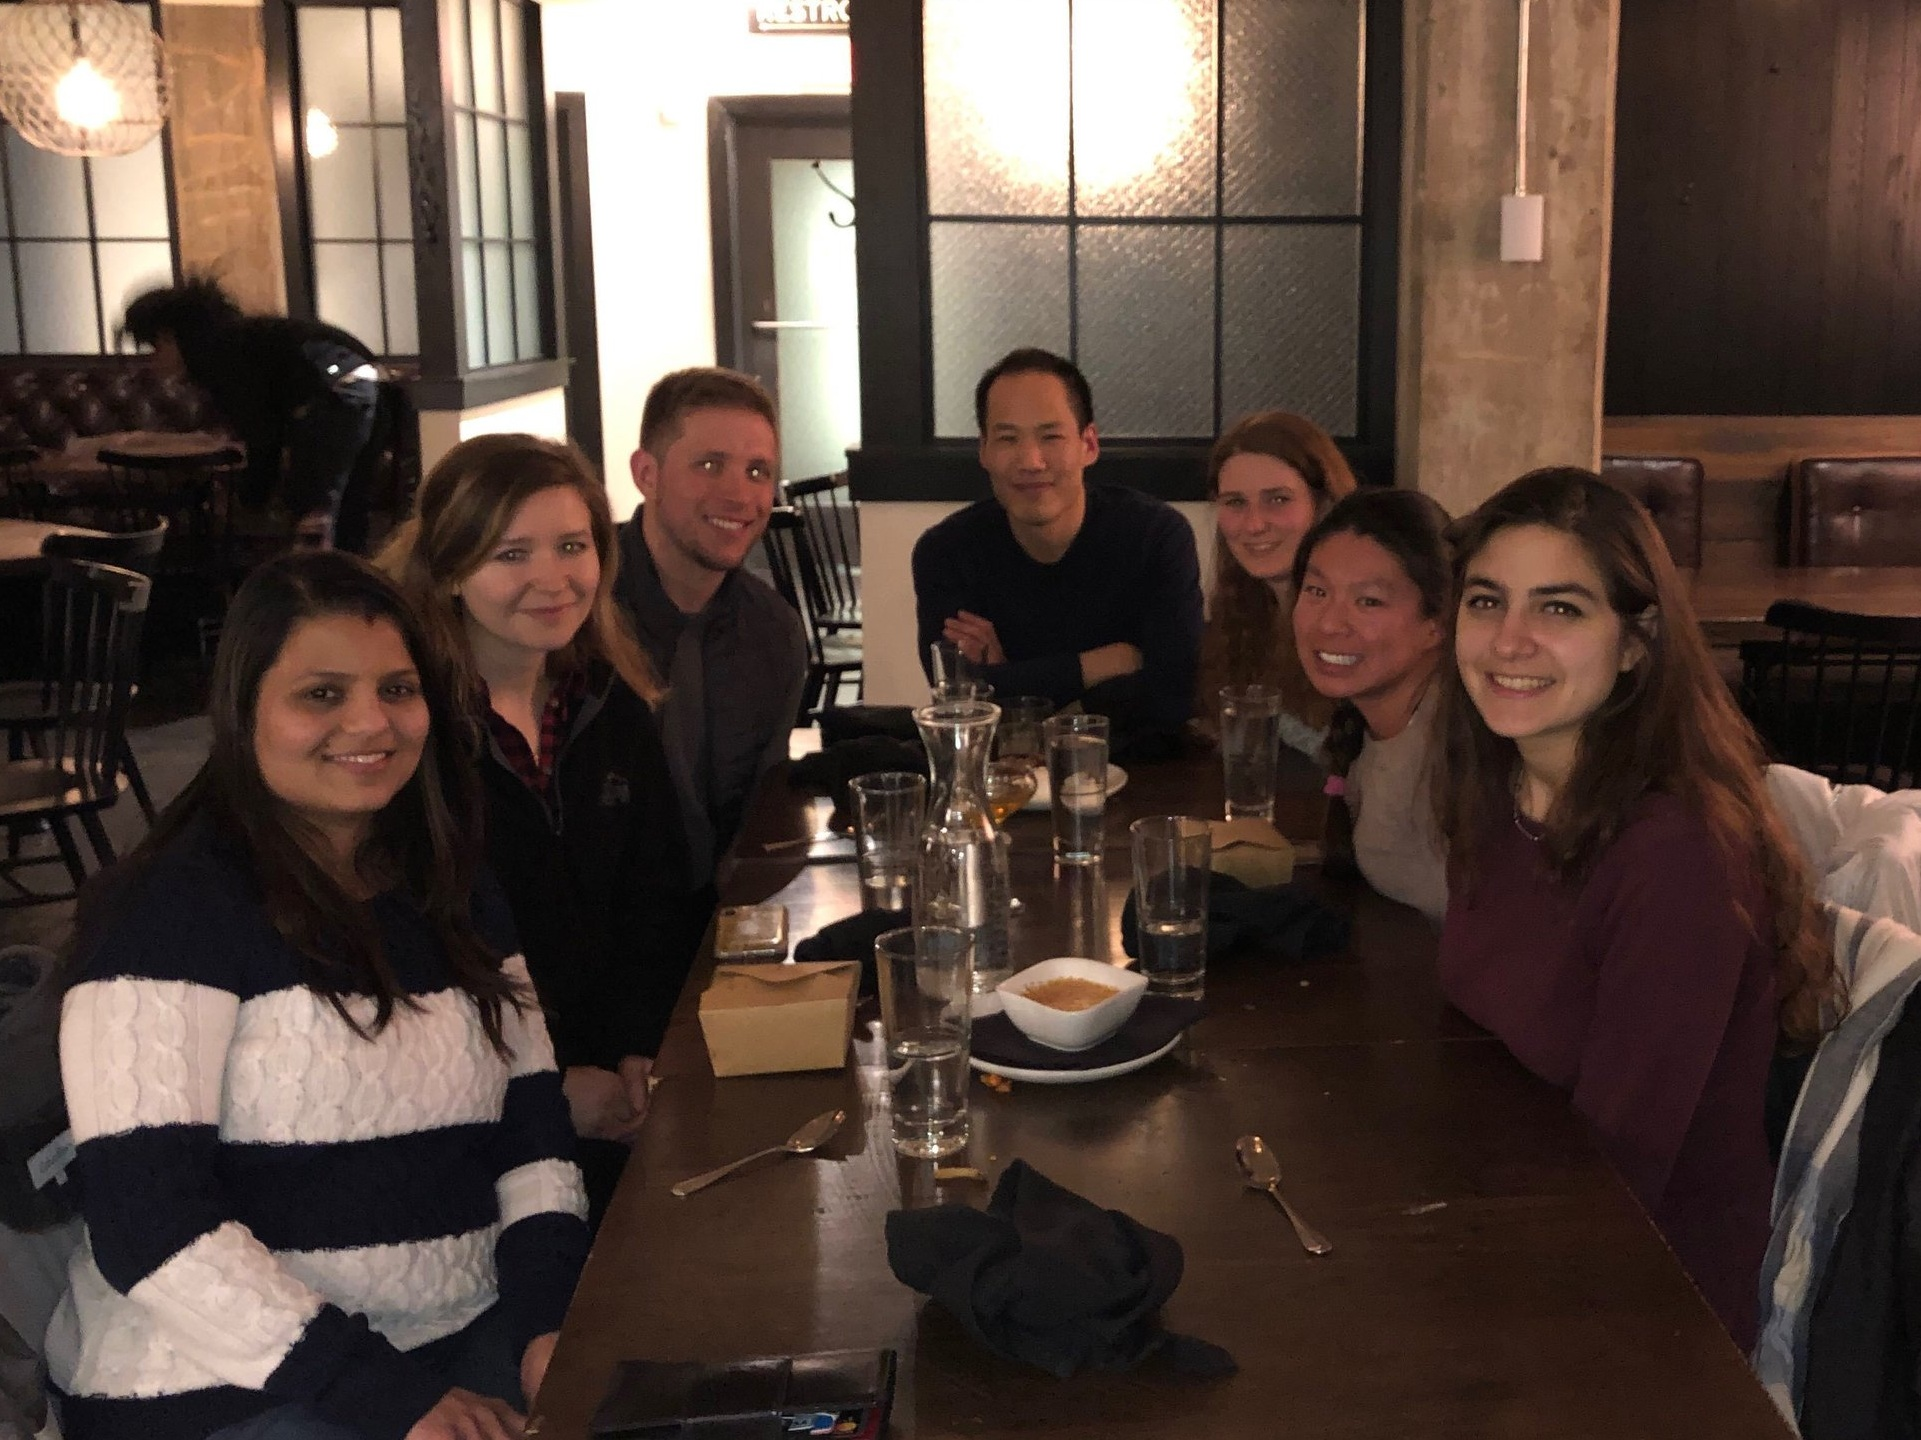 The LSD1 project was (and still is) a huge, interdisciplinary endeavor that required the coordinated efforts of many members of our lab (as well as collaborators) in a diverse array of fields. Here, the core members of the LSD1 team celebrate a hard-won success. Congratulations!